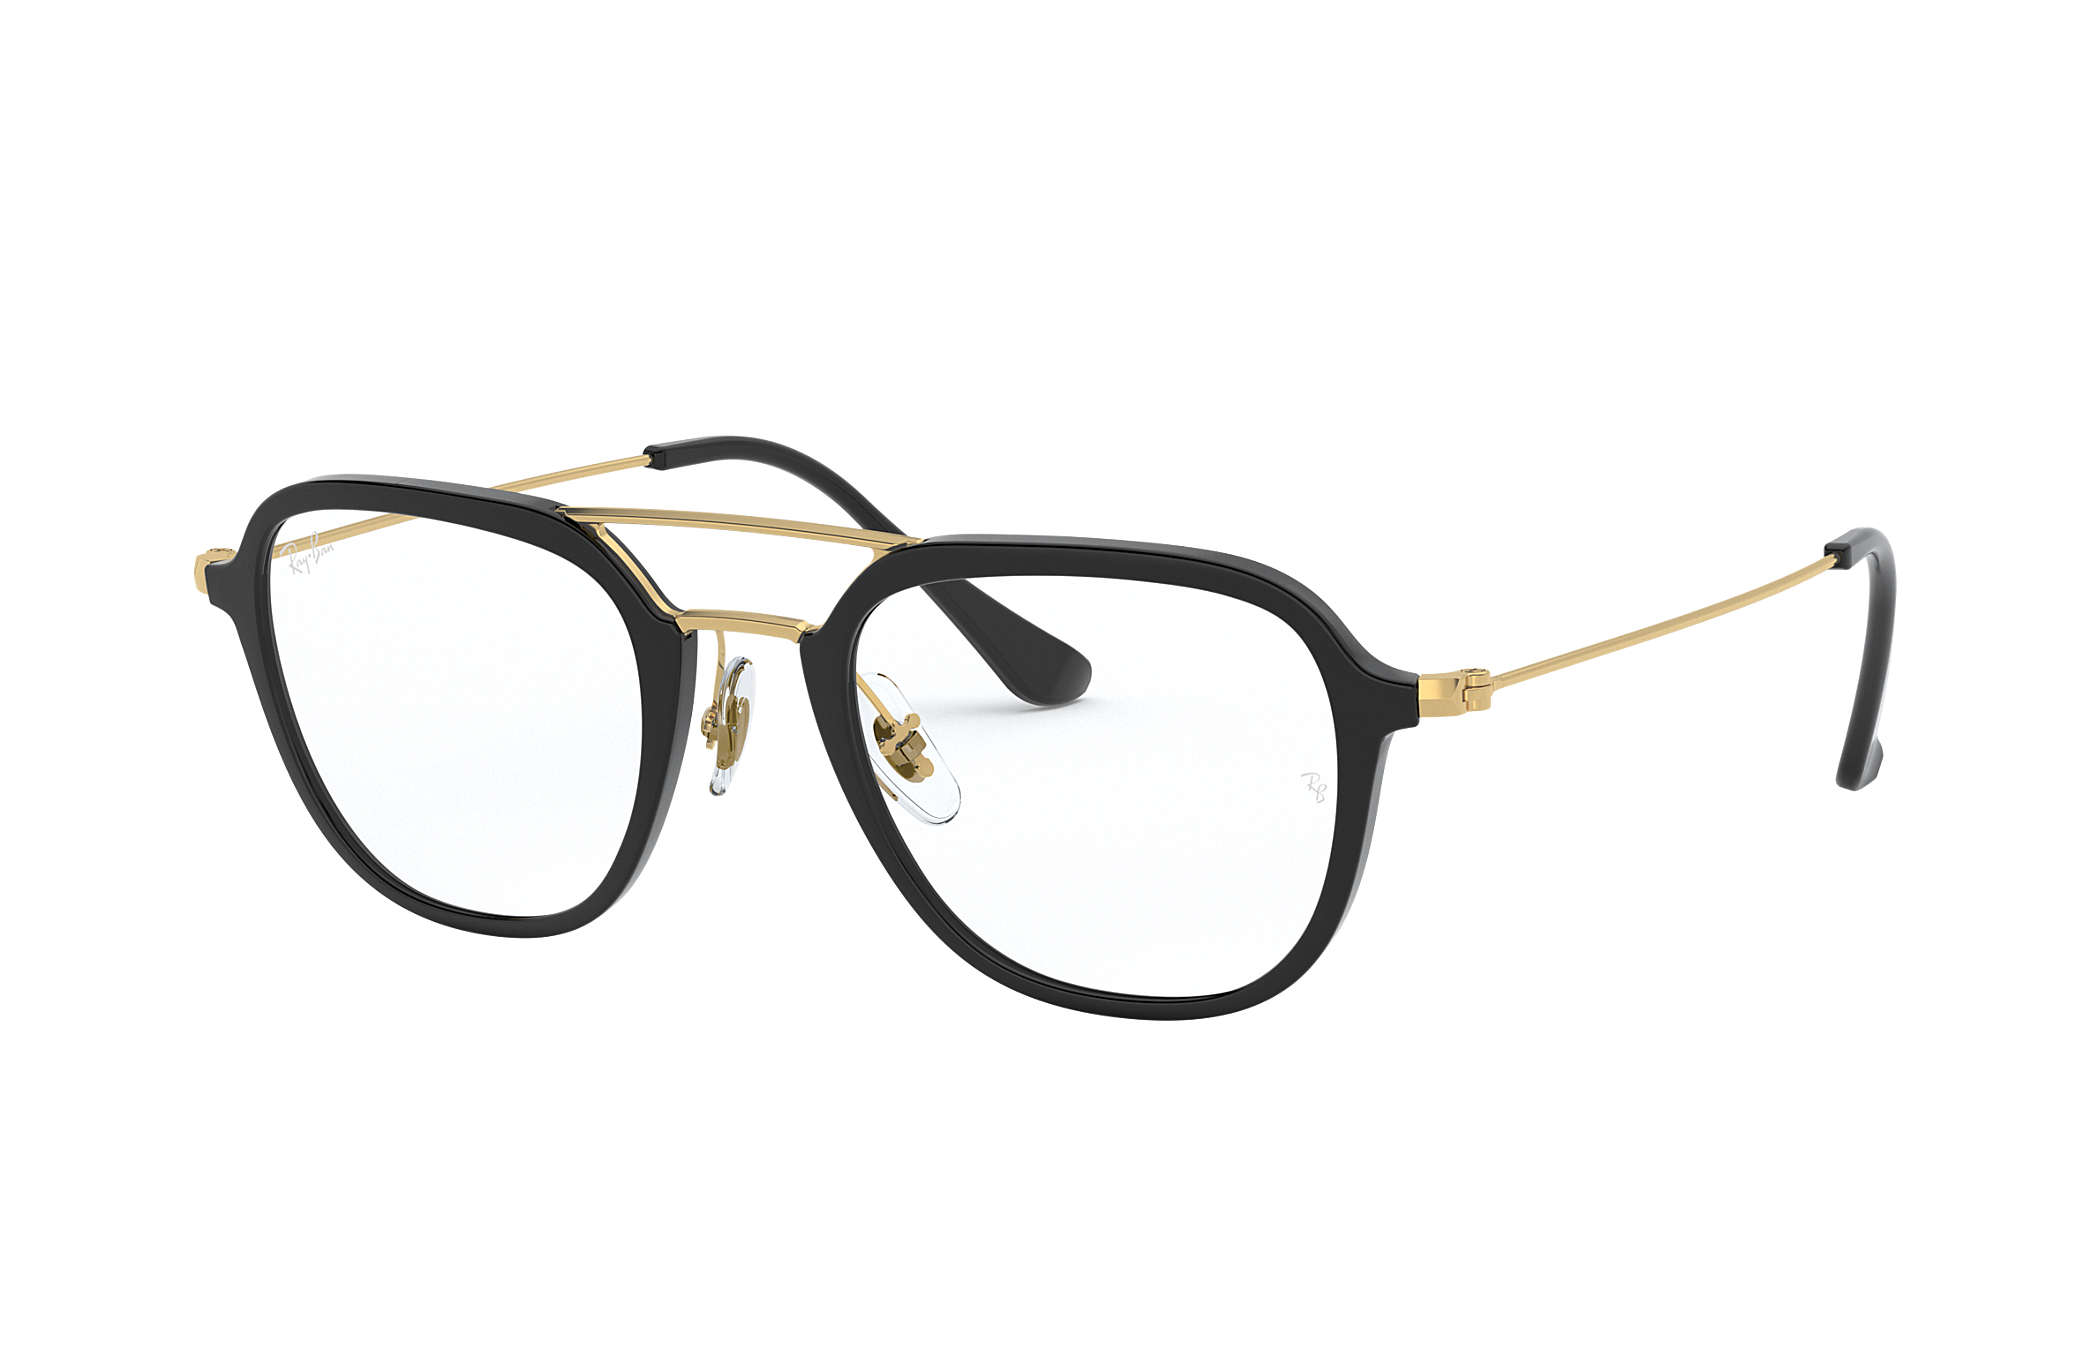 Ray-Ban Brillen RB7098 Schwarz - Injected - 0RX7098200048 | Ray-Ban ...